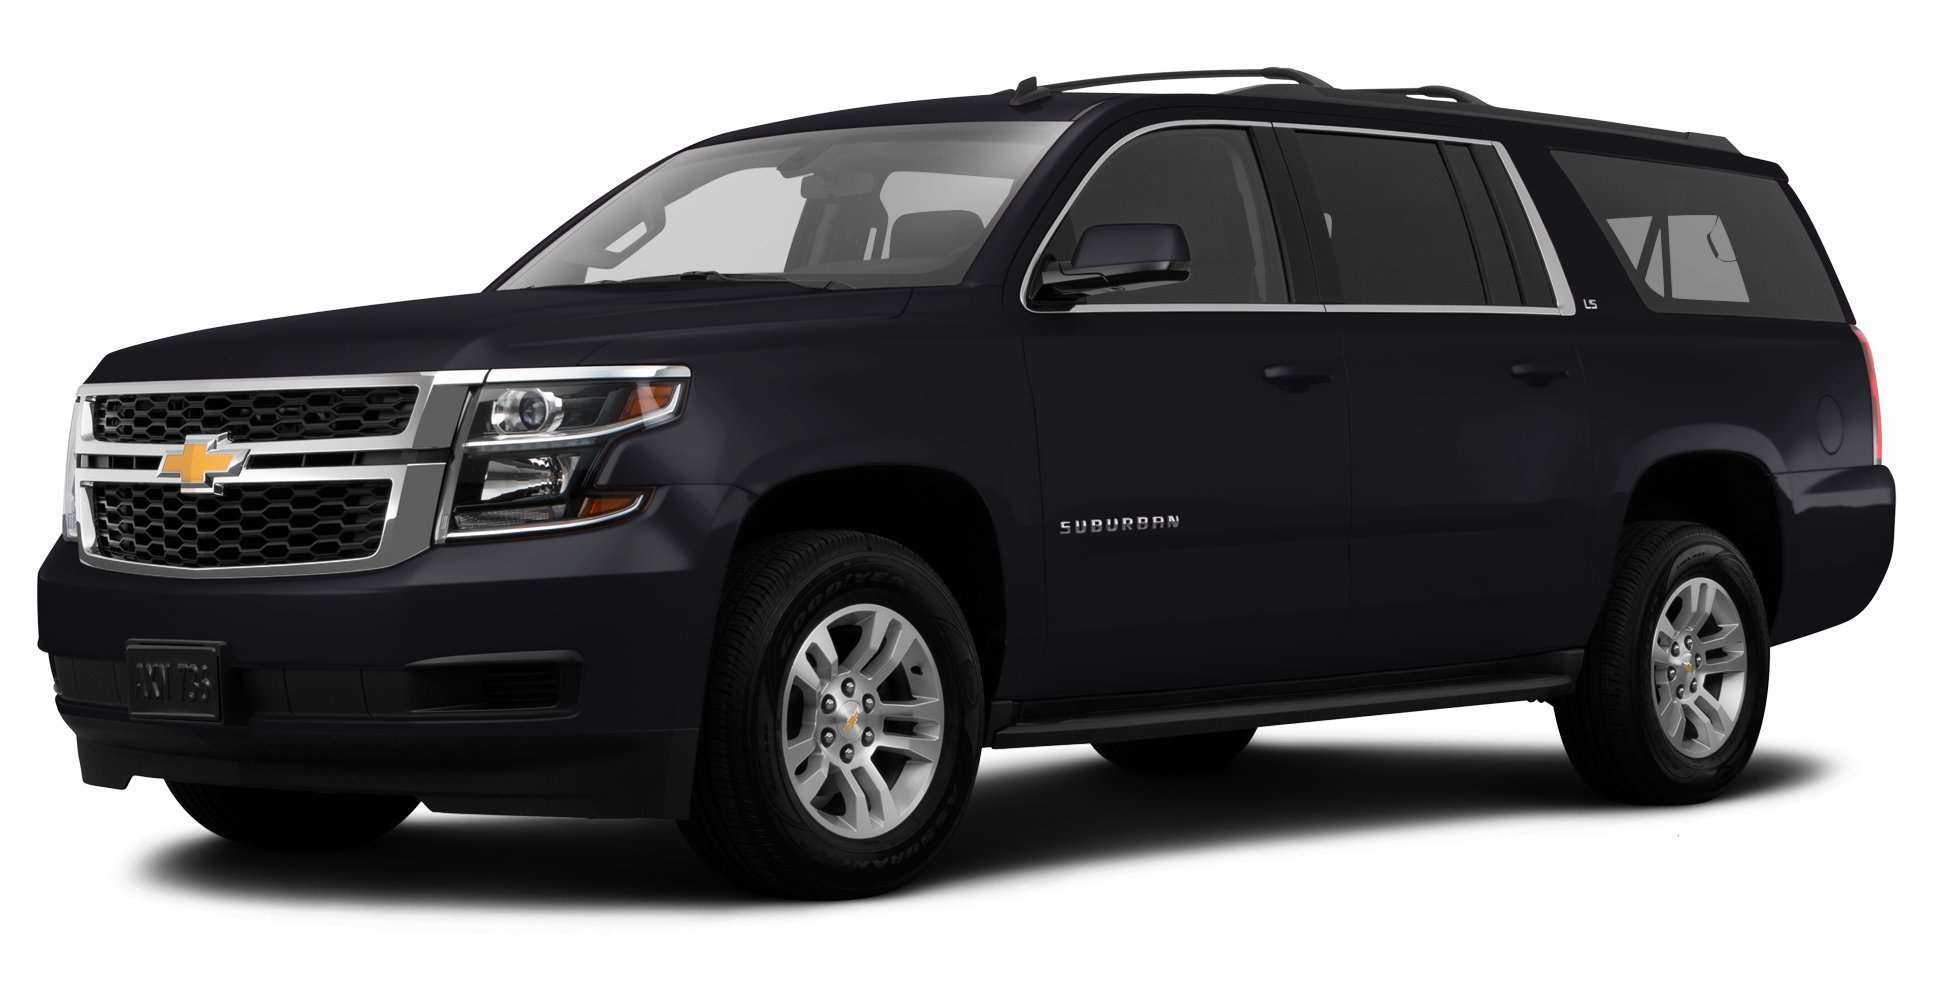 2017 chevrolet suburban reviews images and specs vehicles. Black Bedroom Furniture Sets. Home Design Ideas